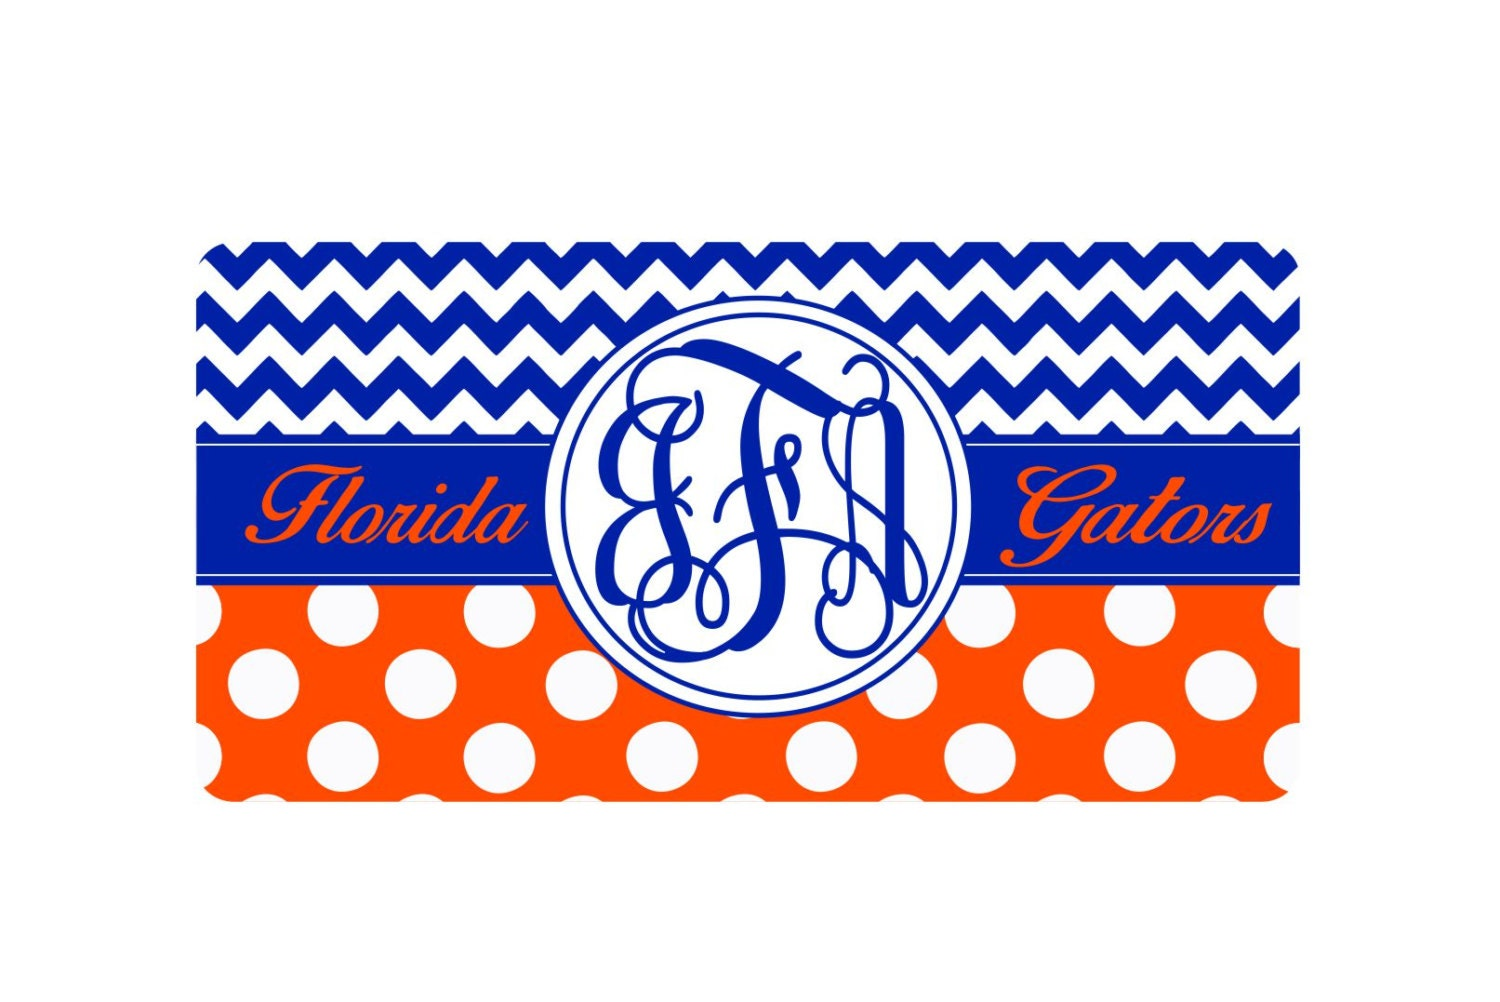 monogram car tag Florida car tag orange and blue birthday